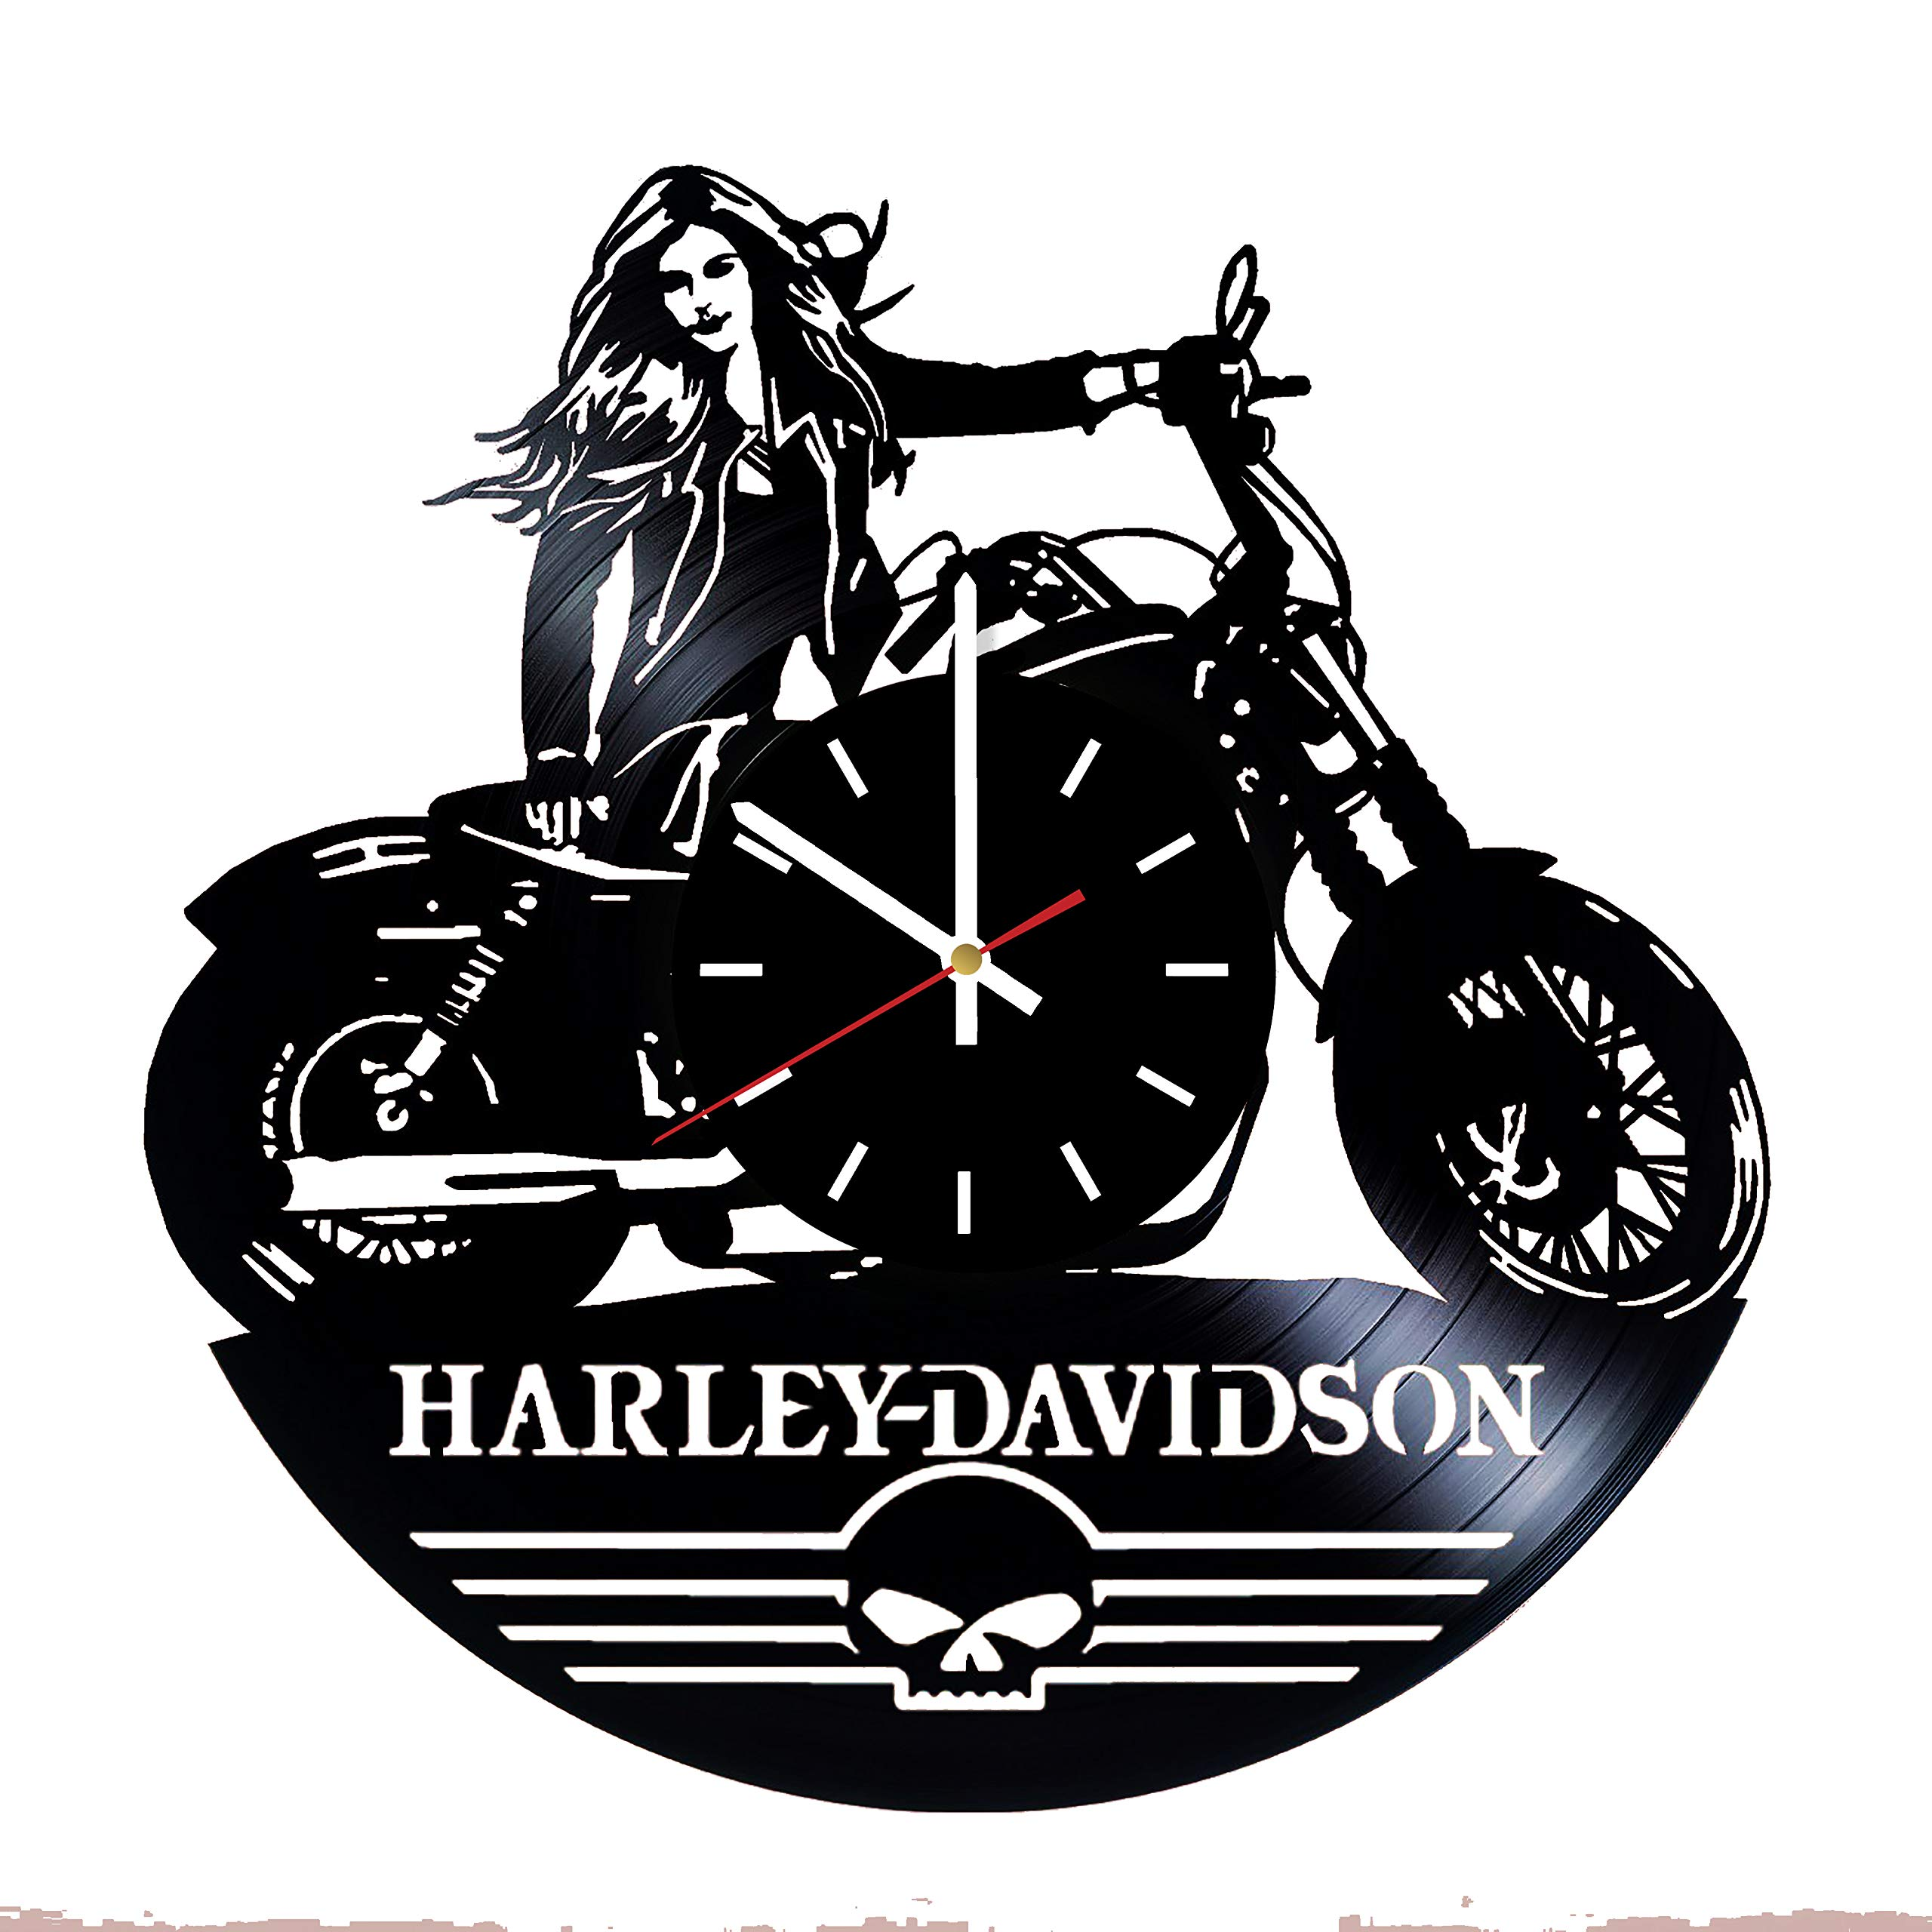 Everyday Arts Welcome Harley-Davidson Design Vinyl Record Wall Clock - Get Unique Bedroom or Garage Wall Decor - Gift Ideas for Friends, Brother – Harley-Davidson Unique Modern Art … by Everyday Arts